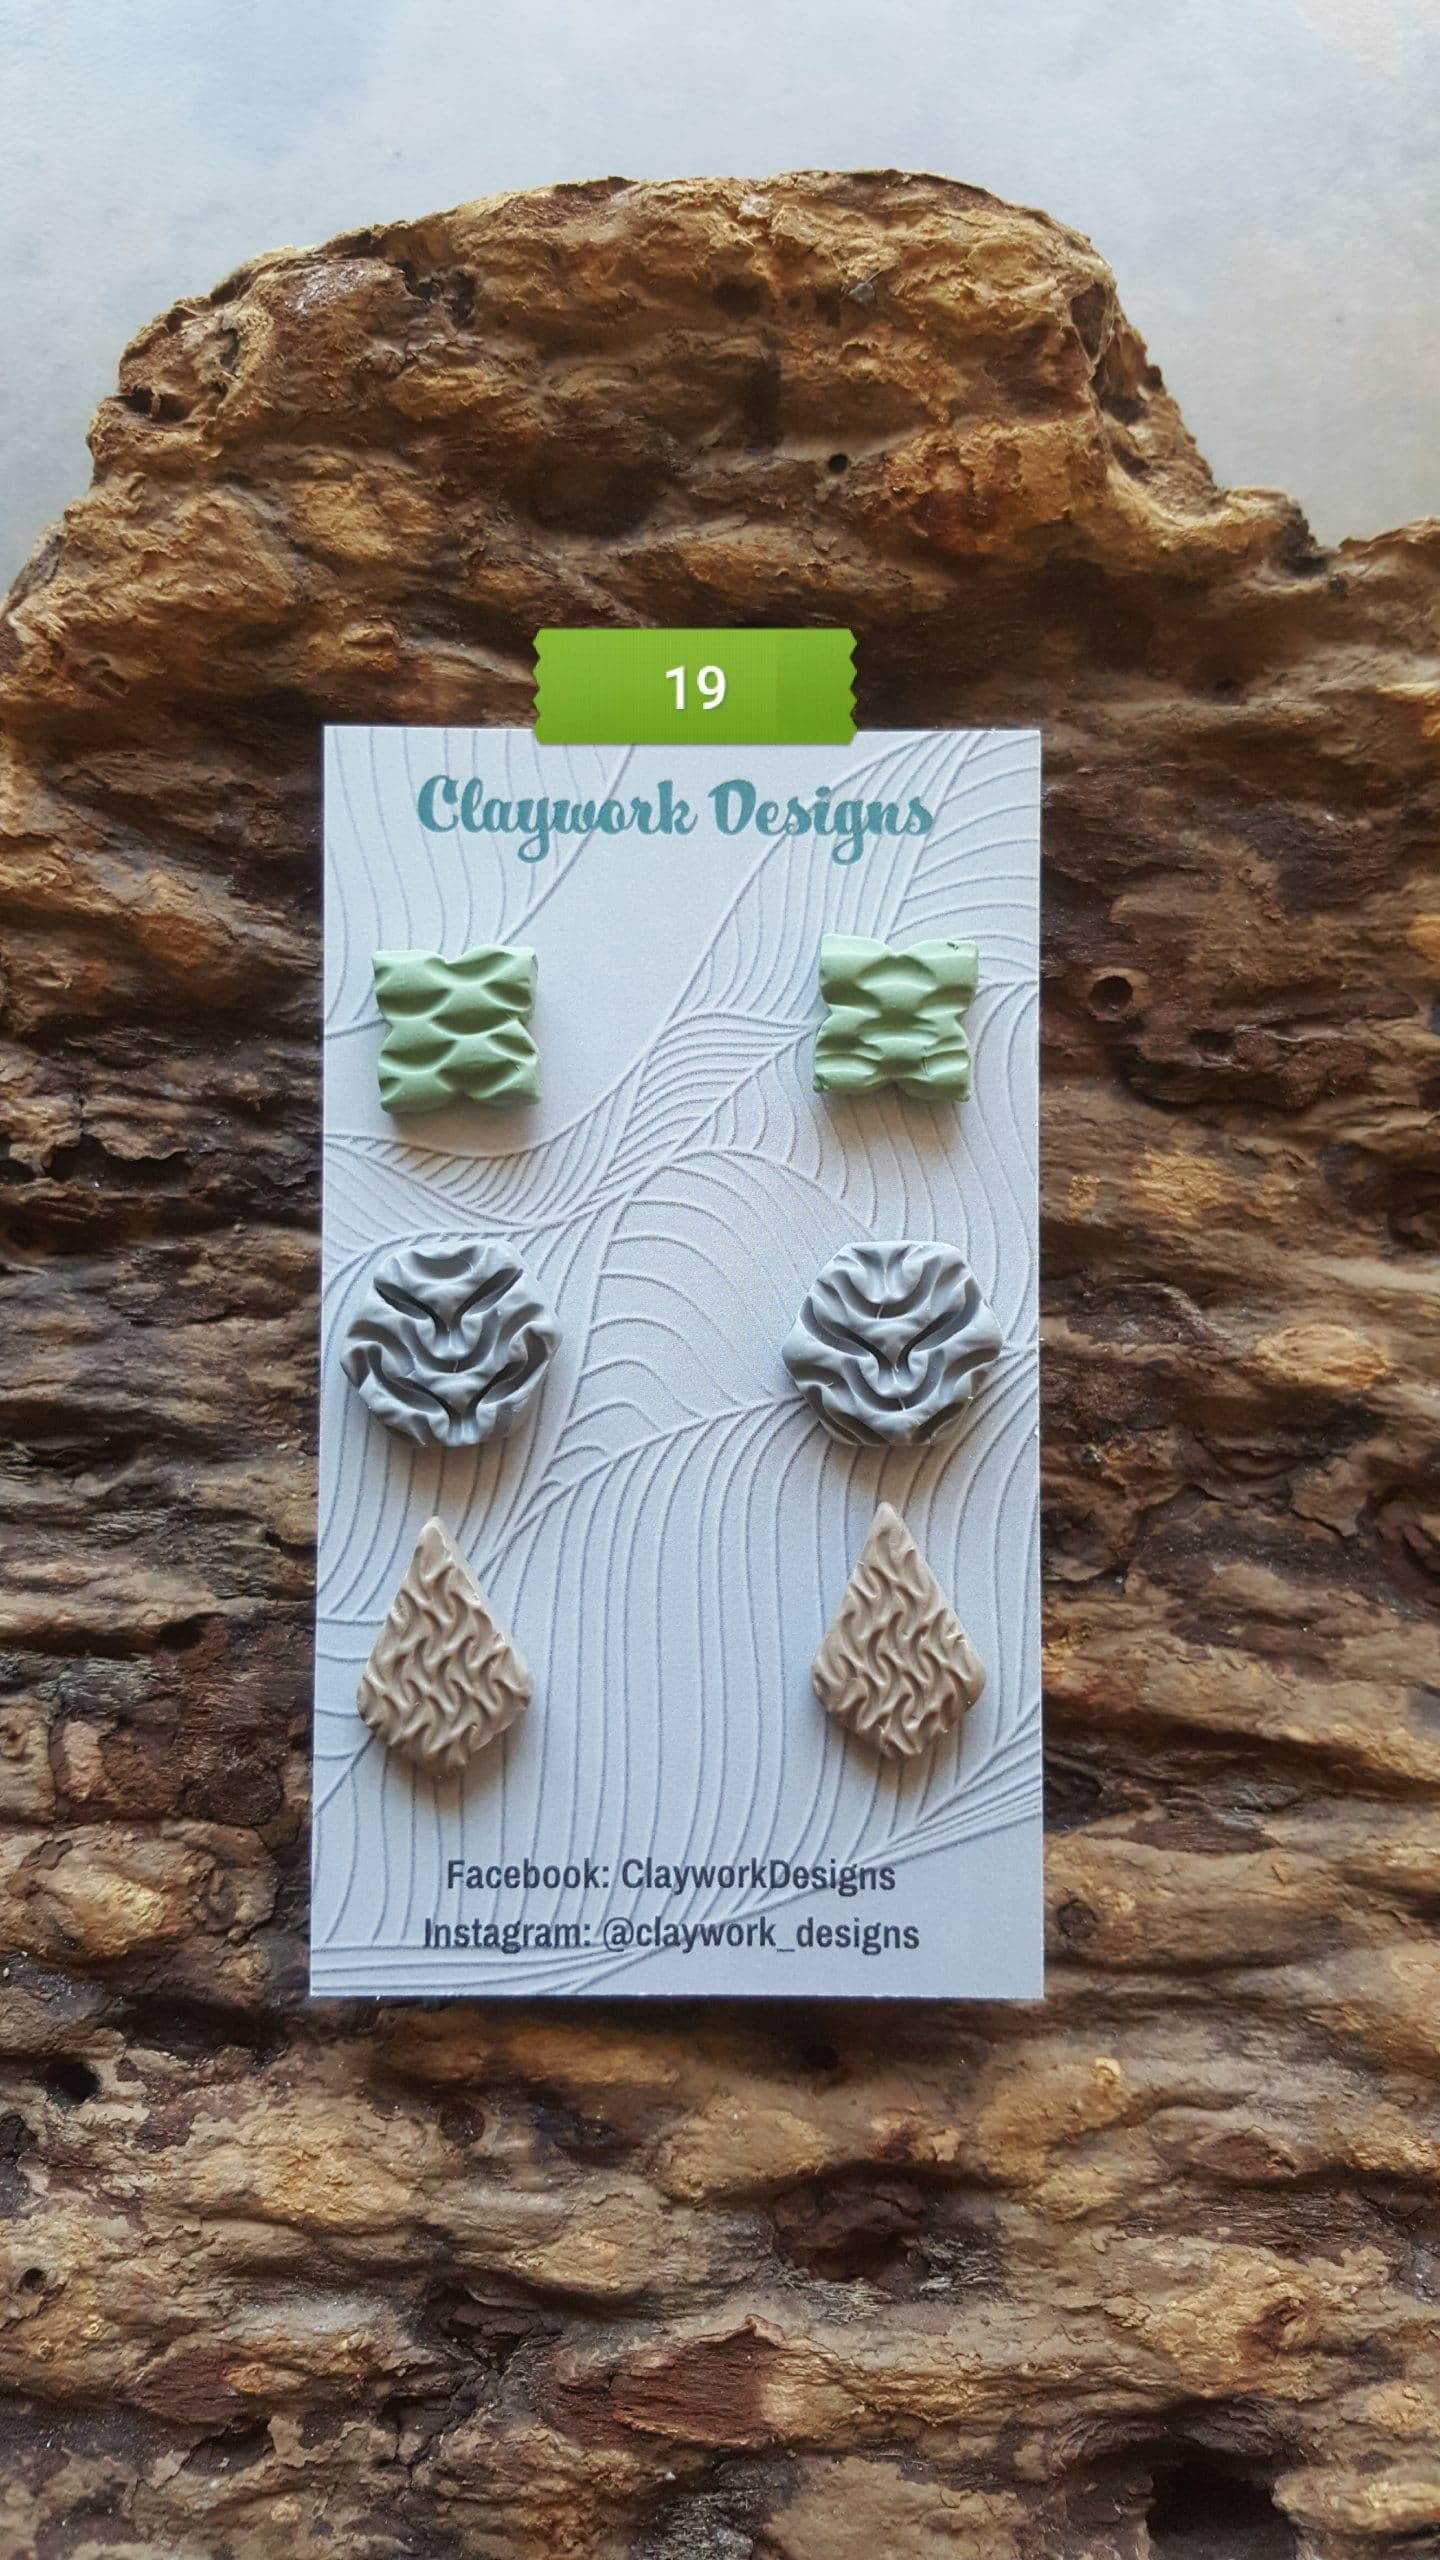 Wirework Designs | Handcrafted chainmaille jewellery and chainmaille products | Chainmaille Weave Stud Earring - 3 Packs | 20210620_172916